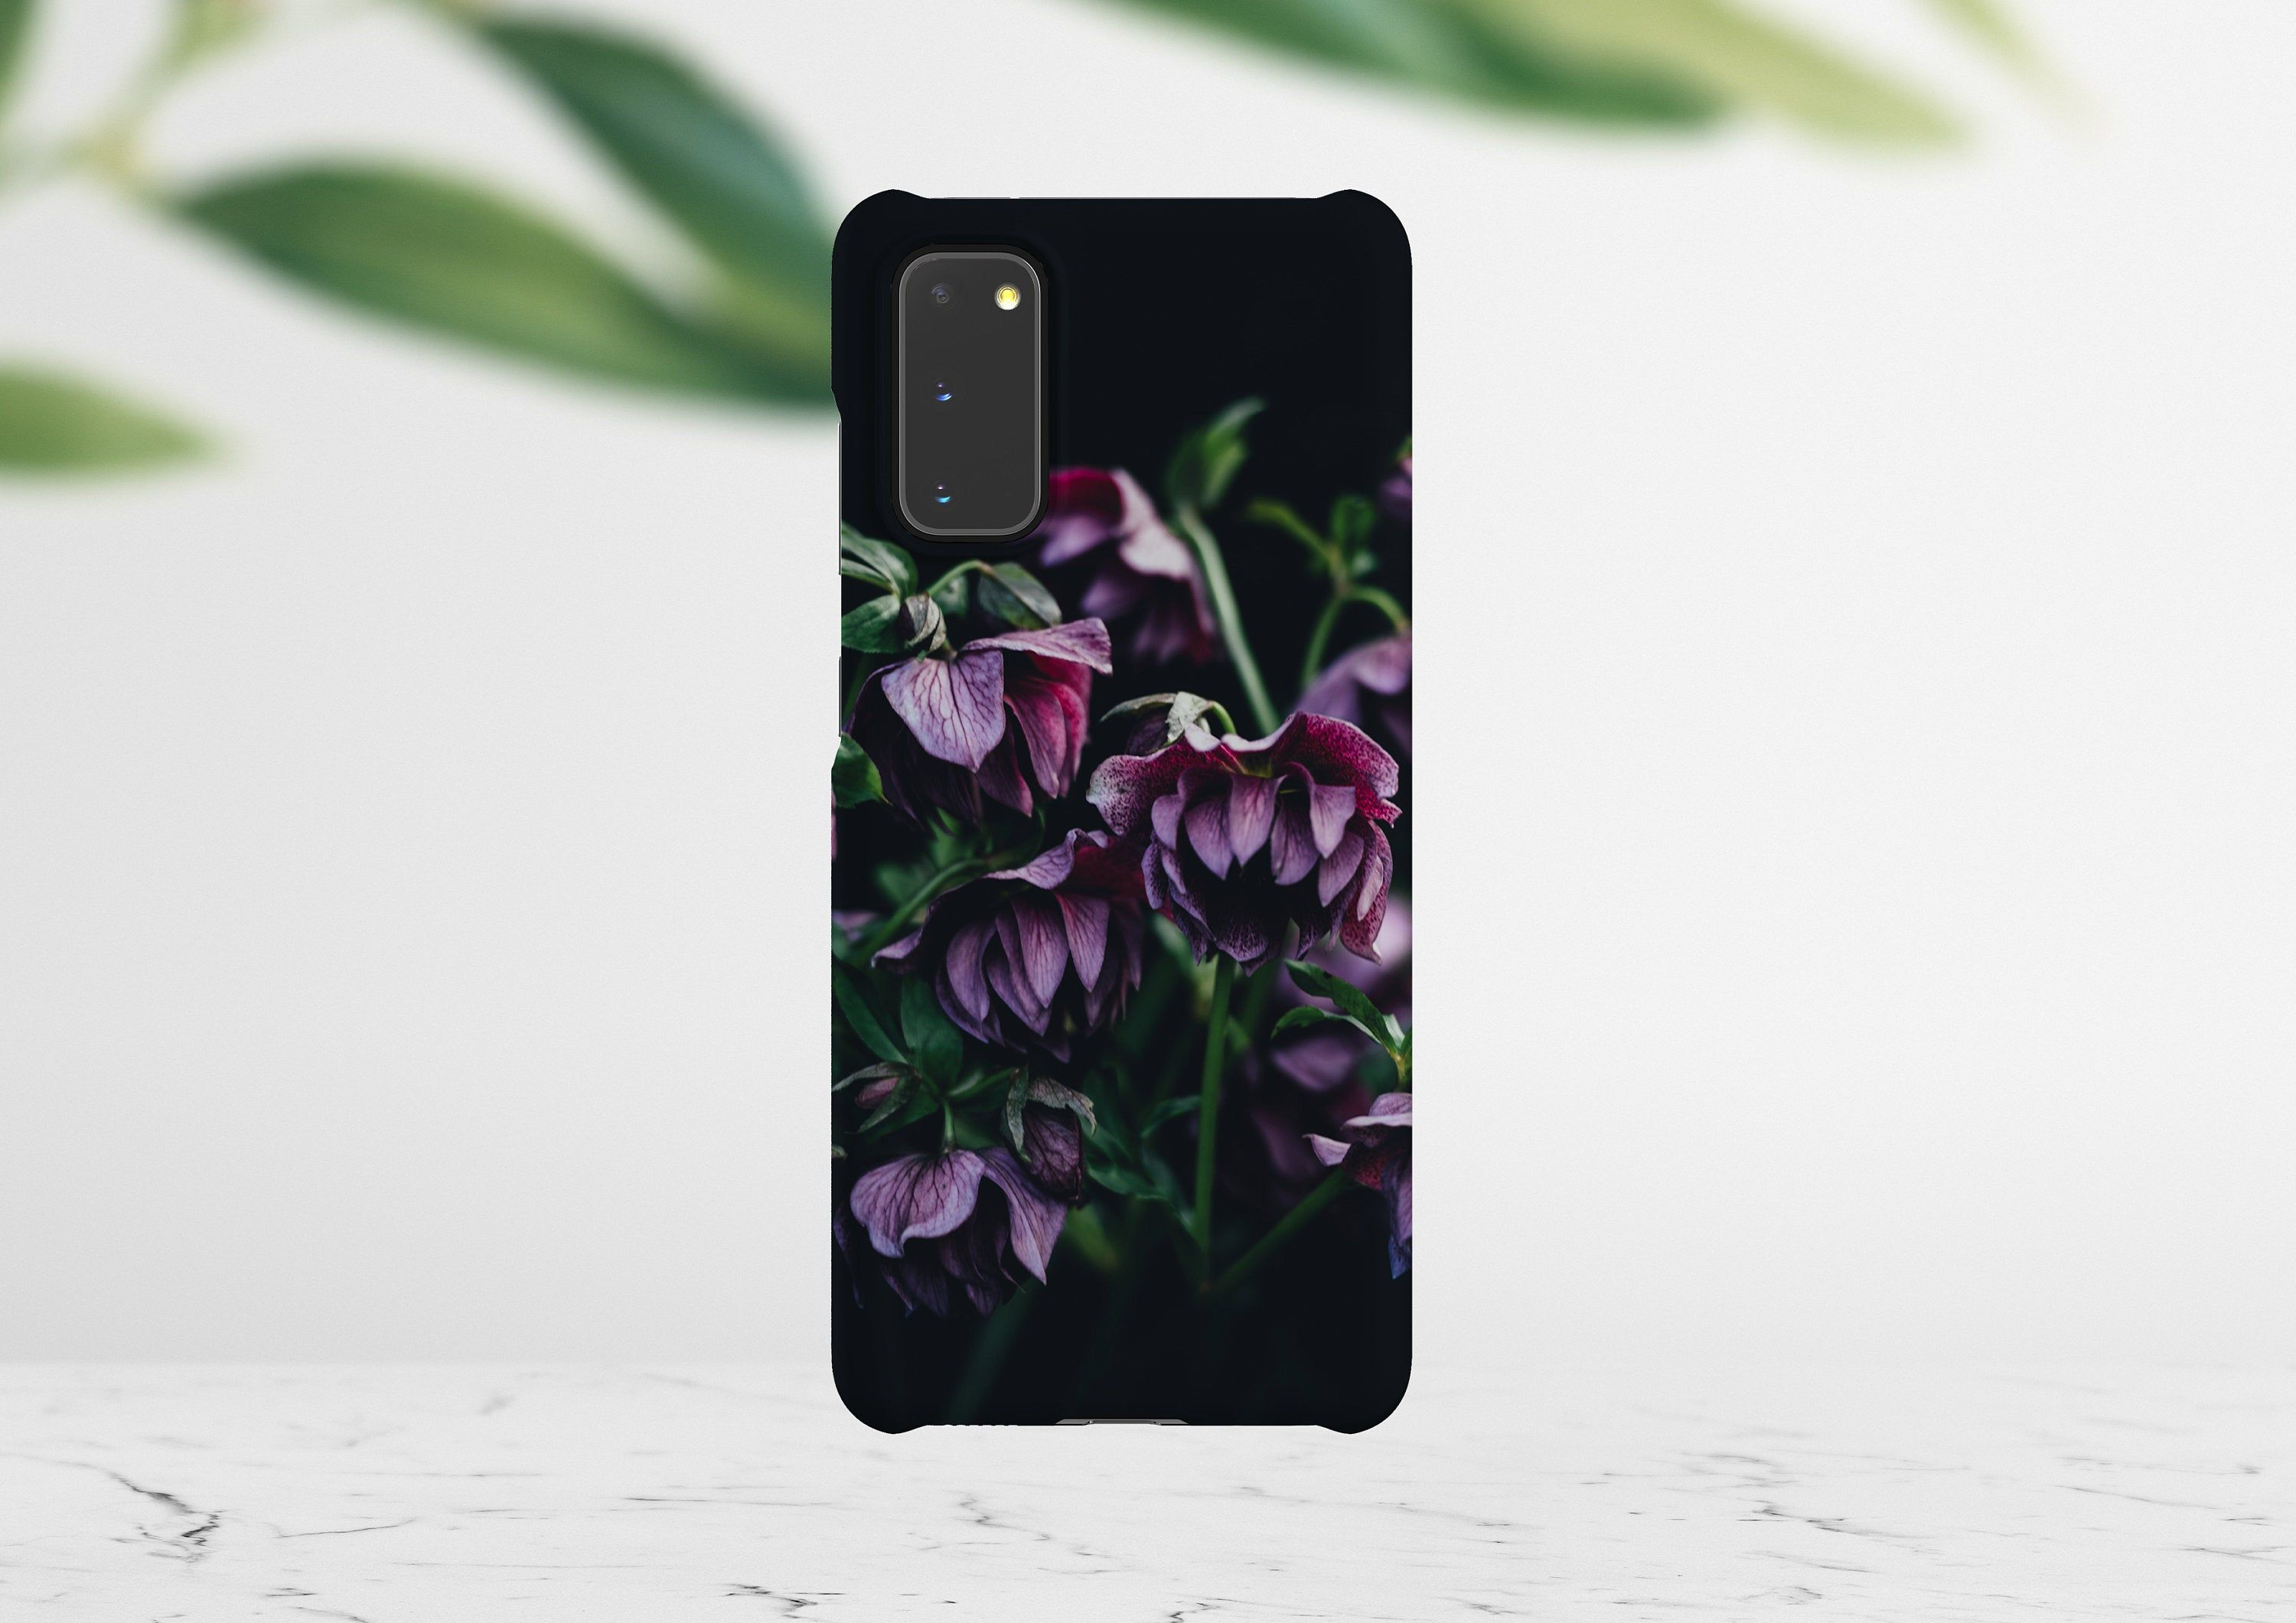 Night Flowers Galaxy S20 Case Galaxy S20 Ultra Case Galaxy S10e Case Galaxy S10 Plus Case Galaxy Note 9 Case Galaxy Note 10 Case #GalaxyNote10Plus #GalaxyS10Case #GalaxyNote9Case #GalaxyS10PlusCase #GalaxyNote10Case #GalaxyS9PlusCase #GalaxyNote8 #GalaxyS10eCase #GalaxyA70 #GalaxyS9Case